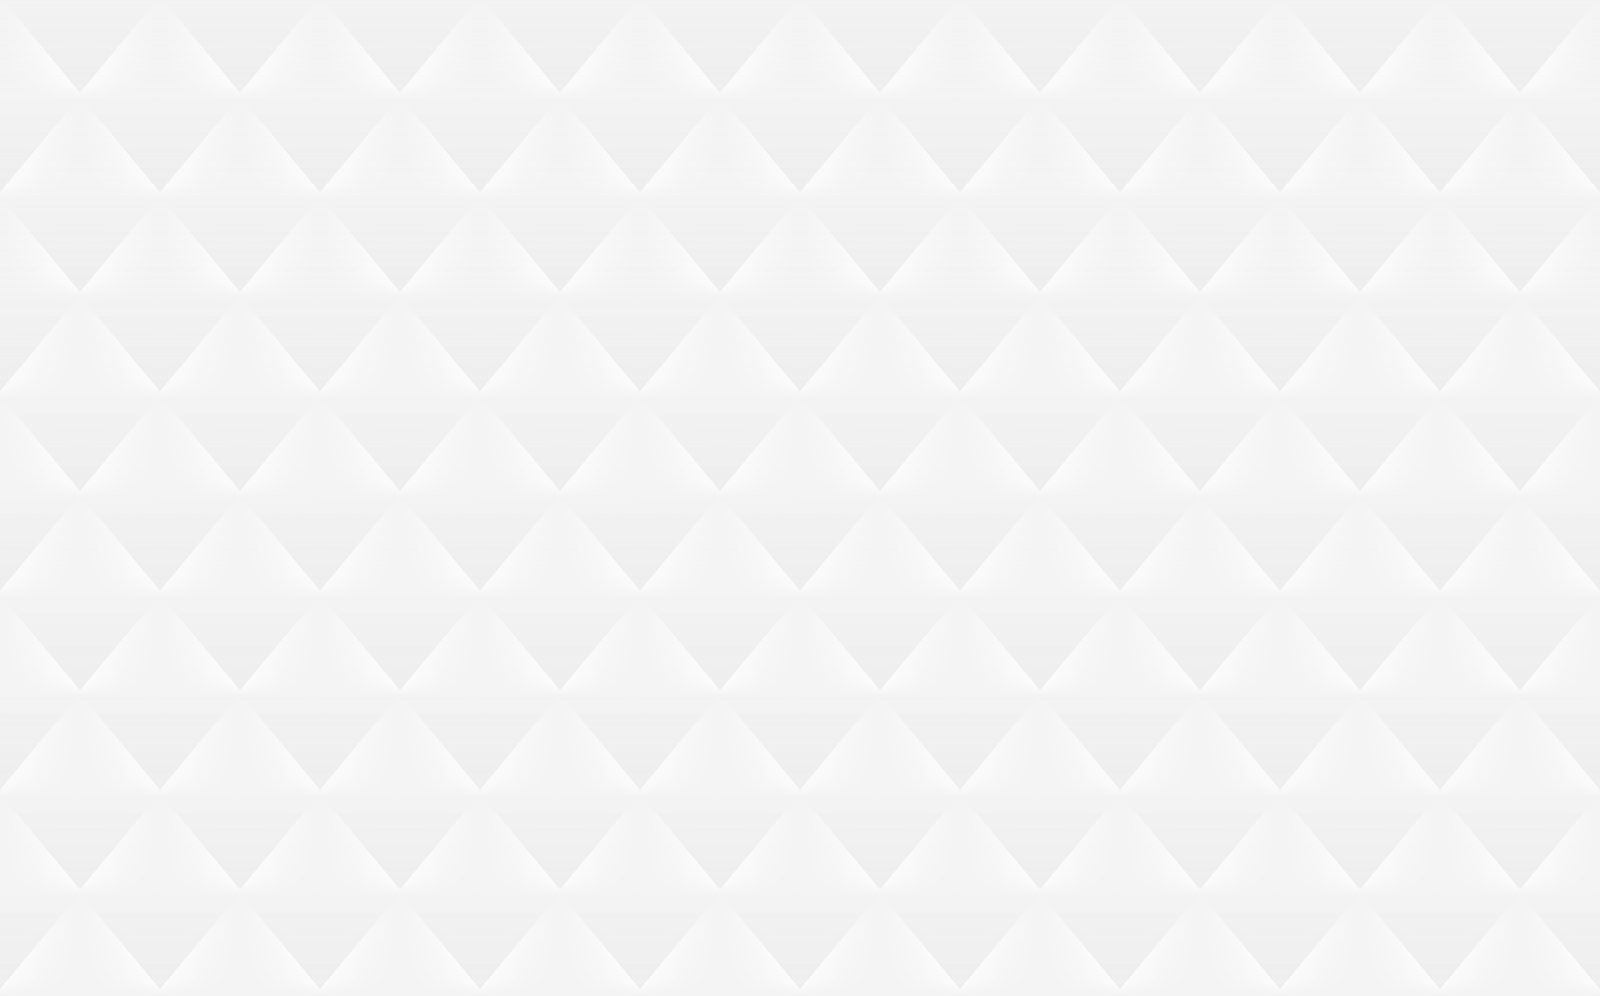 Diamond subtle pattern seamless white texture